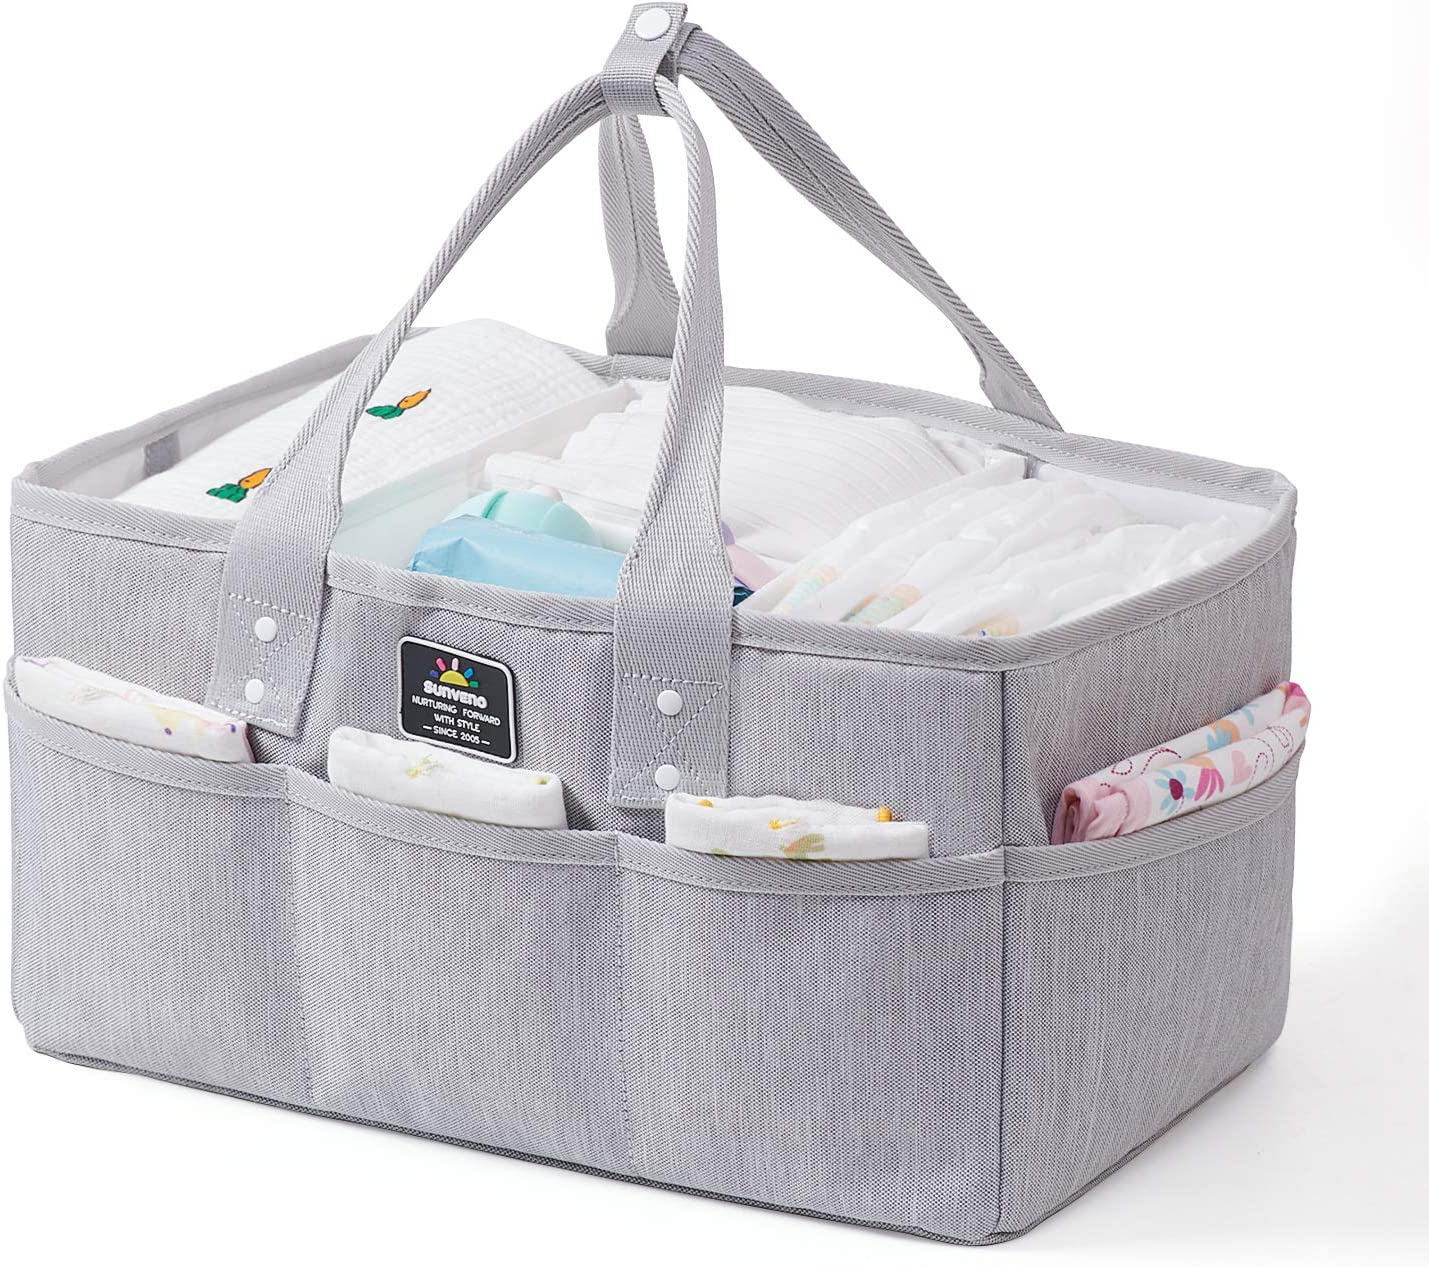 Max 57% OFF SUNVENO Baby Diaper Caddy Organizer Organizers and Large Max 78% OFF S